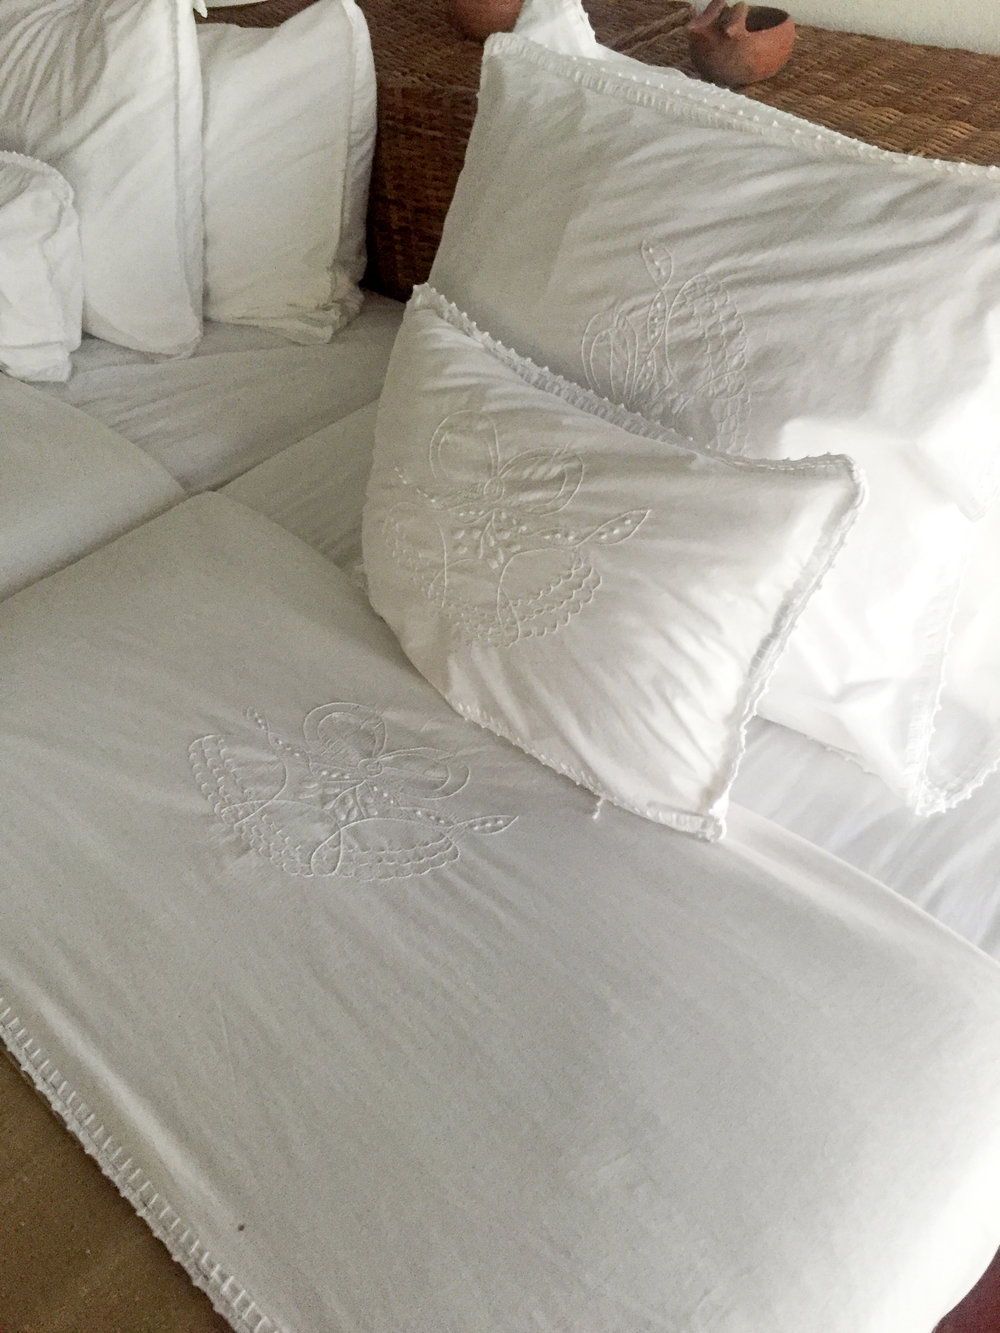 Beautiful detail on bed linens